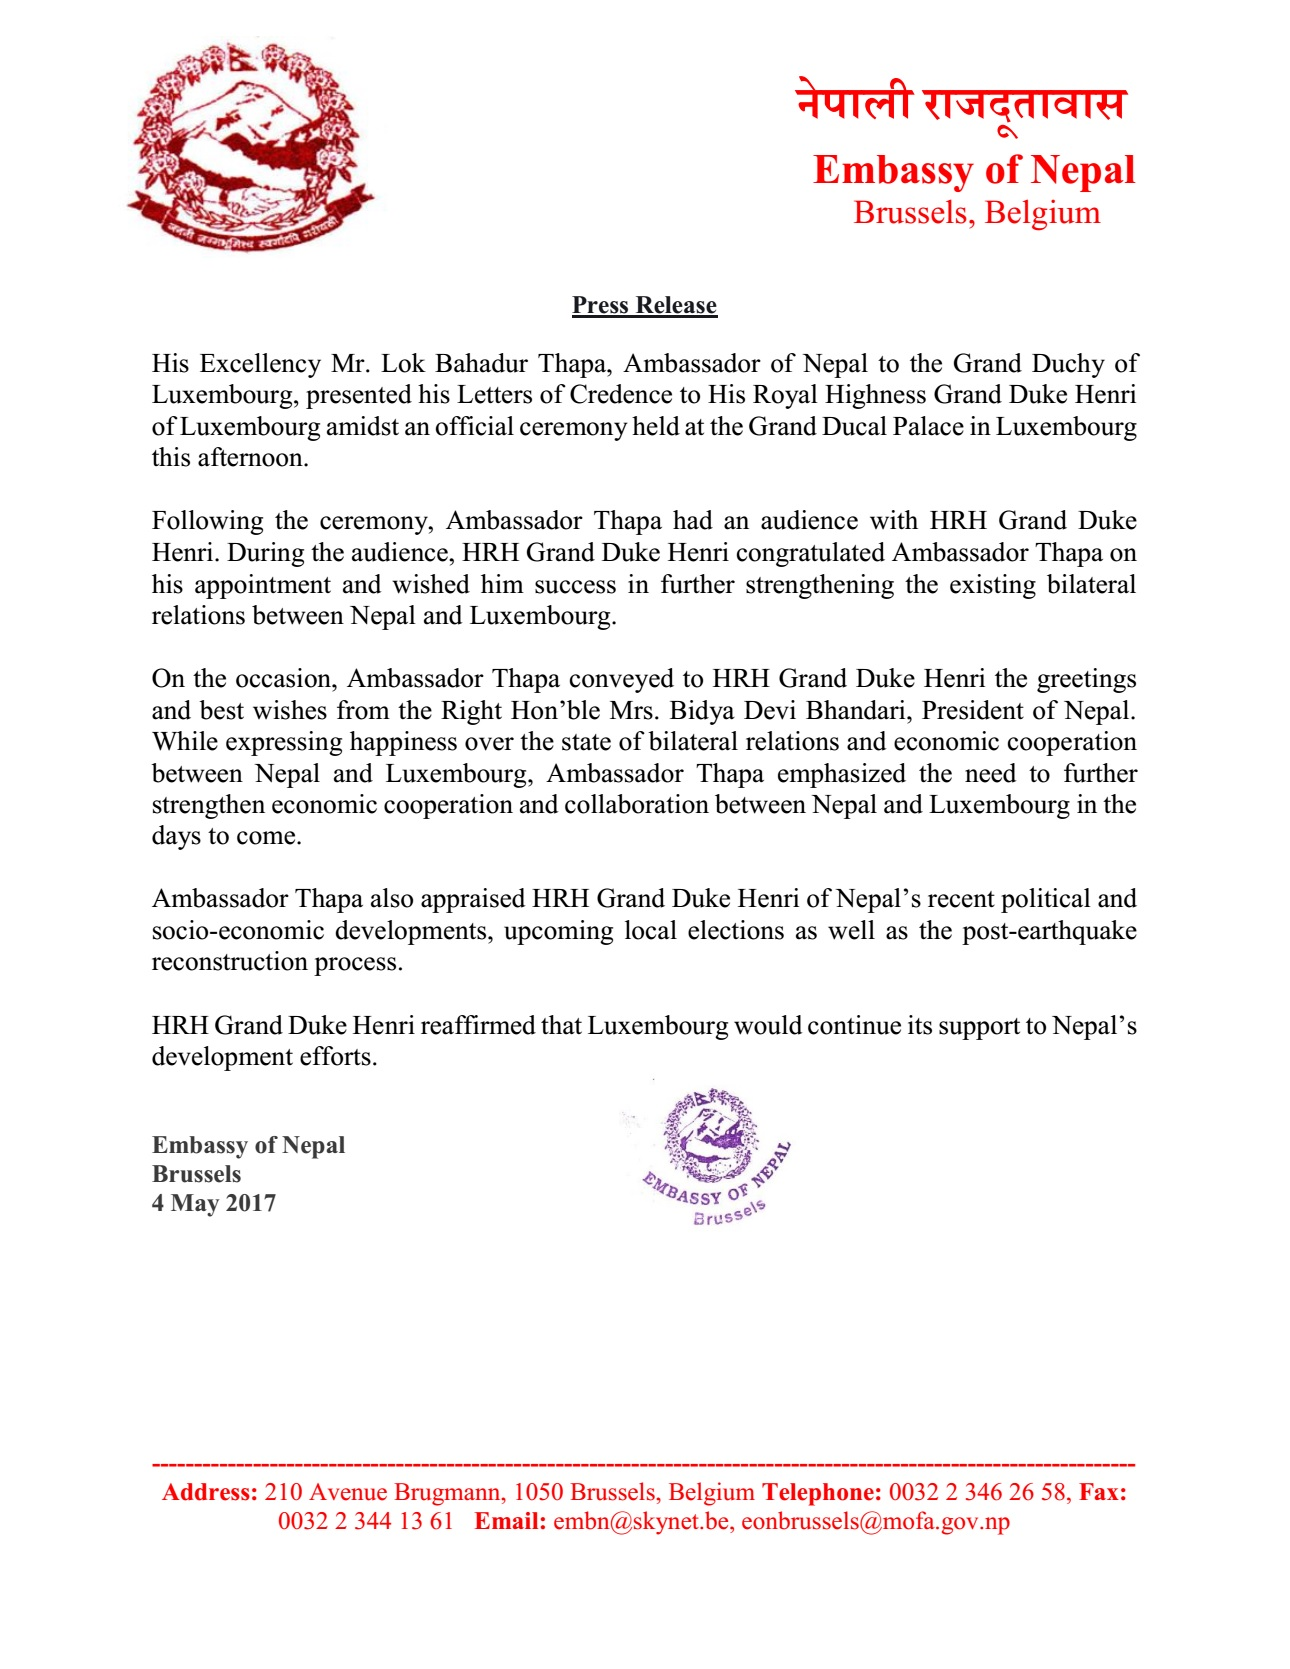 Press Release issued by Embassy of Nepal, Brussels on the